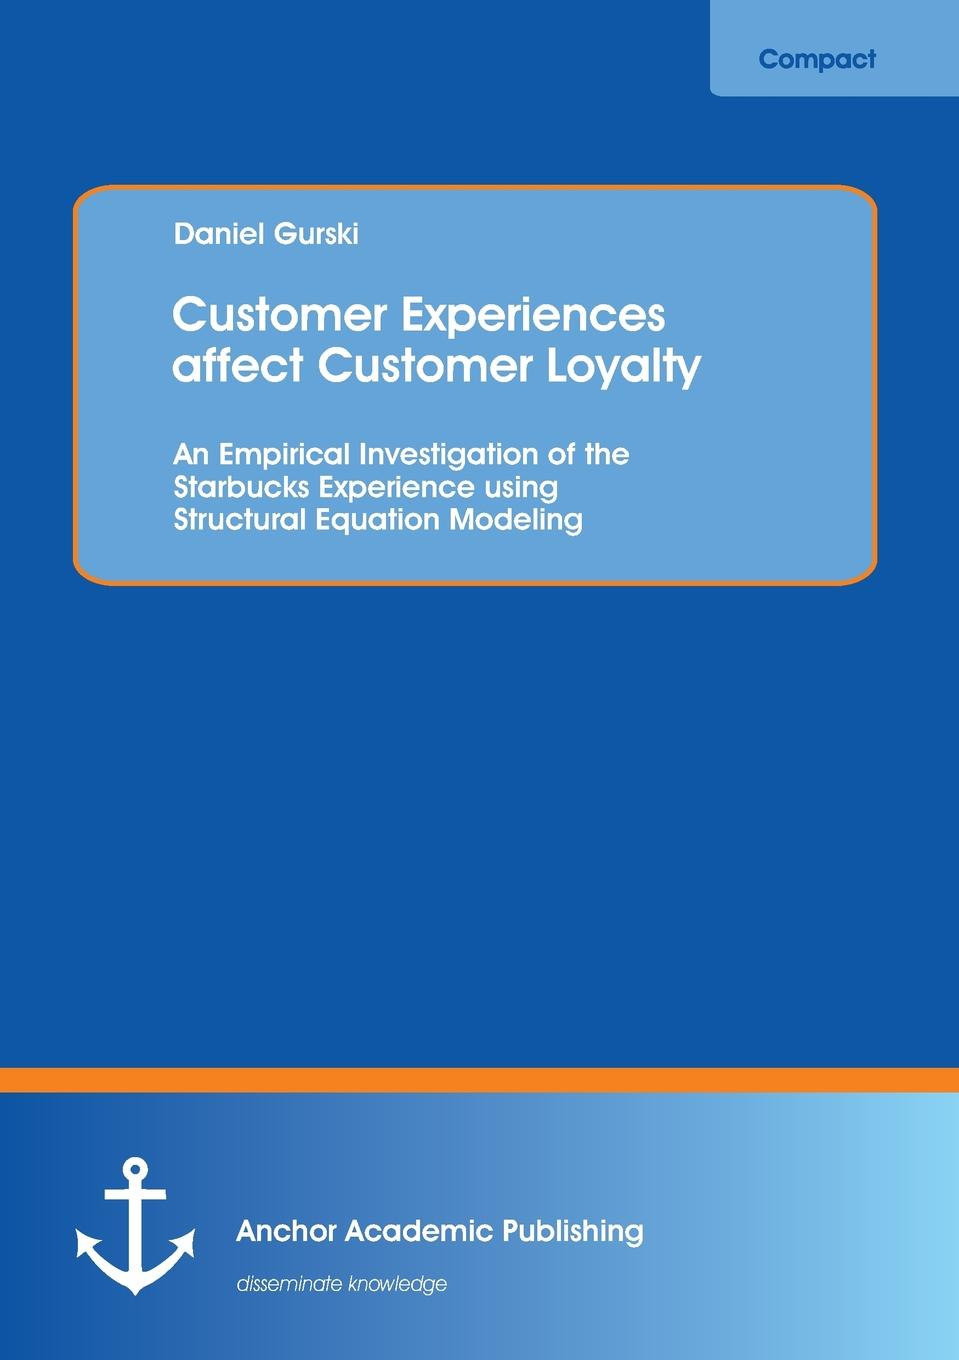 лучшая цена Daniel Gurski Customer Experiences Affect Customer Loyalty. An Empirical Investigation of the Starbucks Experience Using Structural Equation Modeling